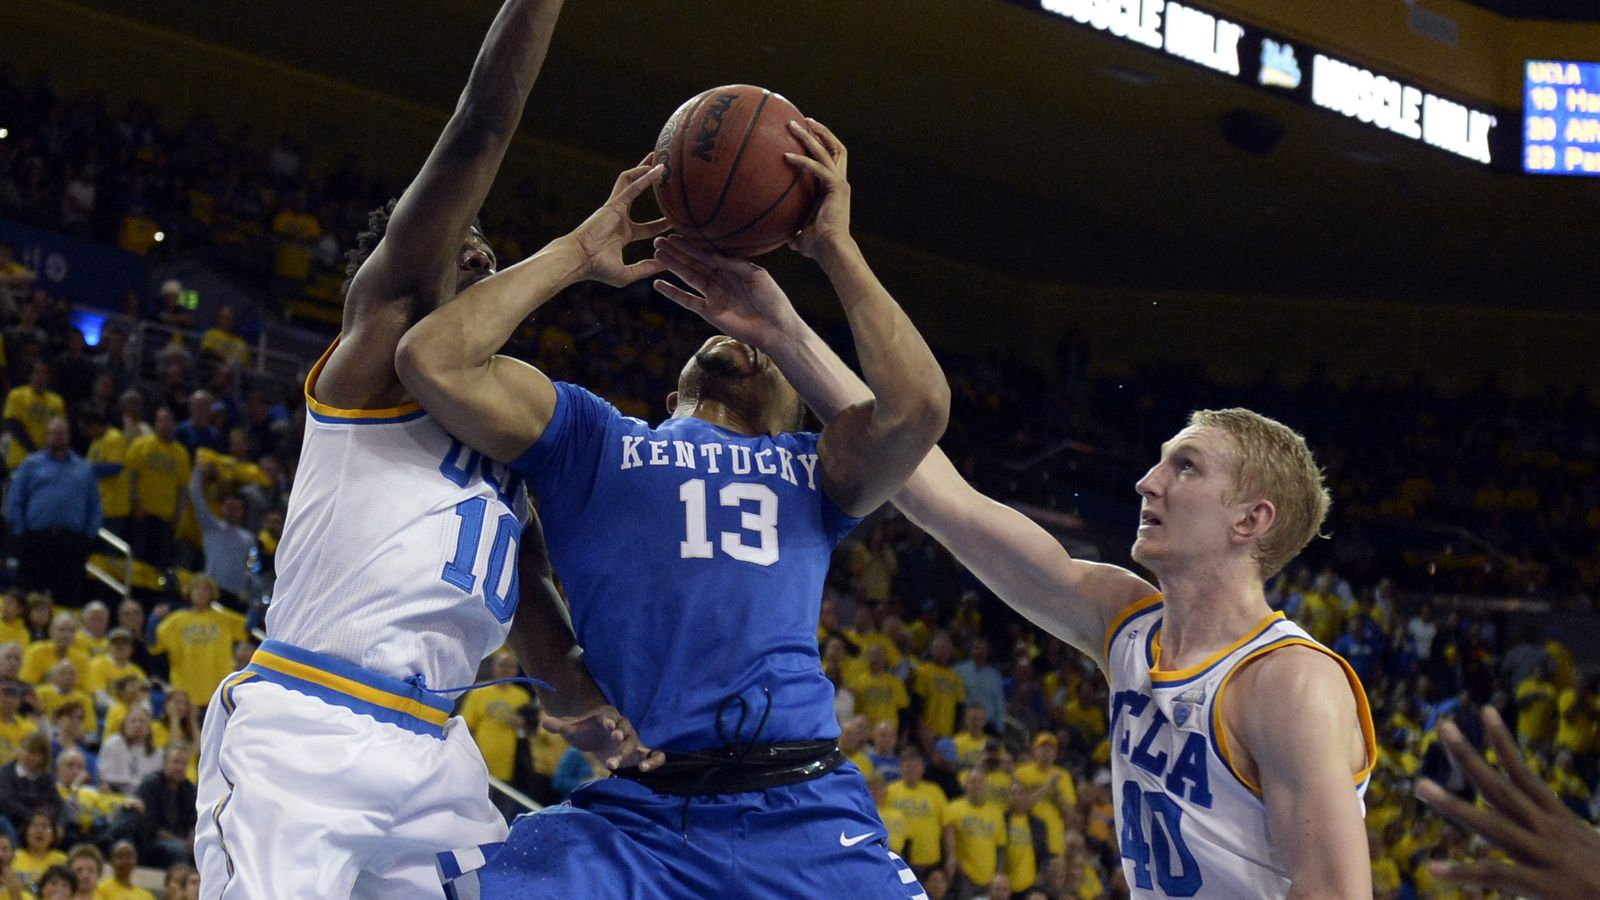 How To Watch Uk Basketball Play Etsu Game Time Tv: How To Watch #11 UCLA At #1 Kentucky: Game Time, TV, Radio